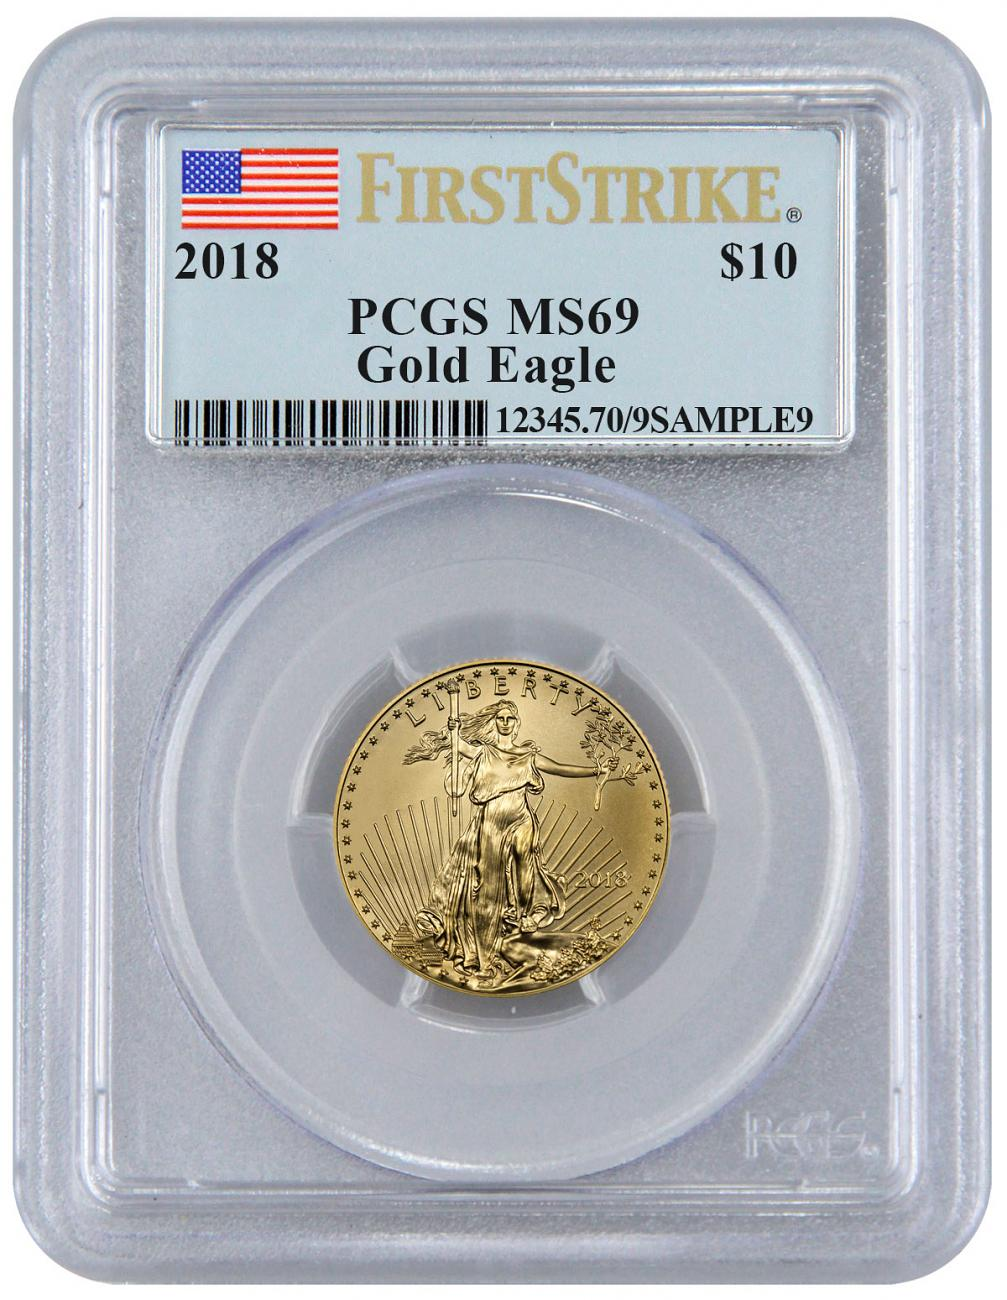 2018 1/4 oz Gold American Eagle $10 PCGS MS69 FS Flag Label